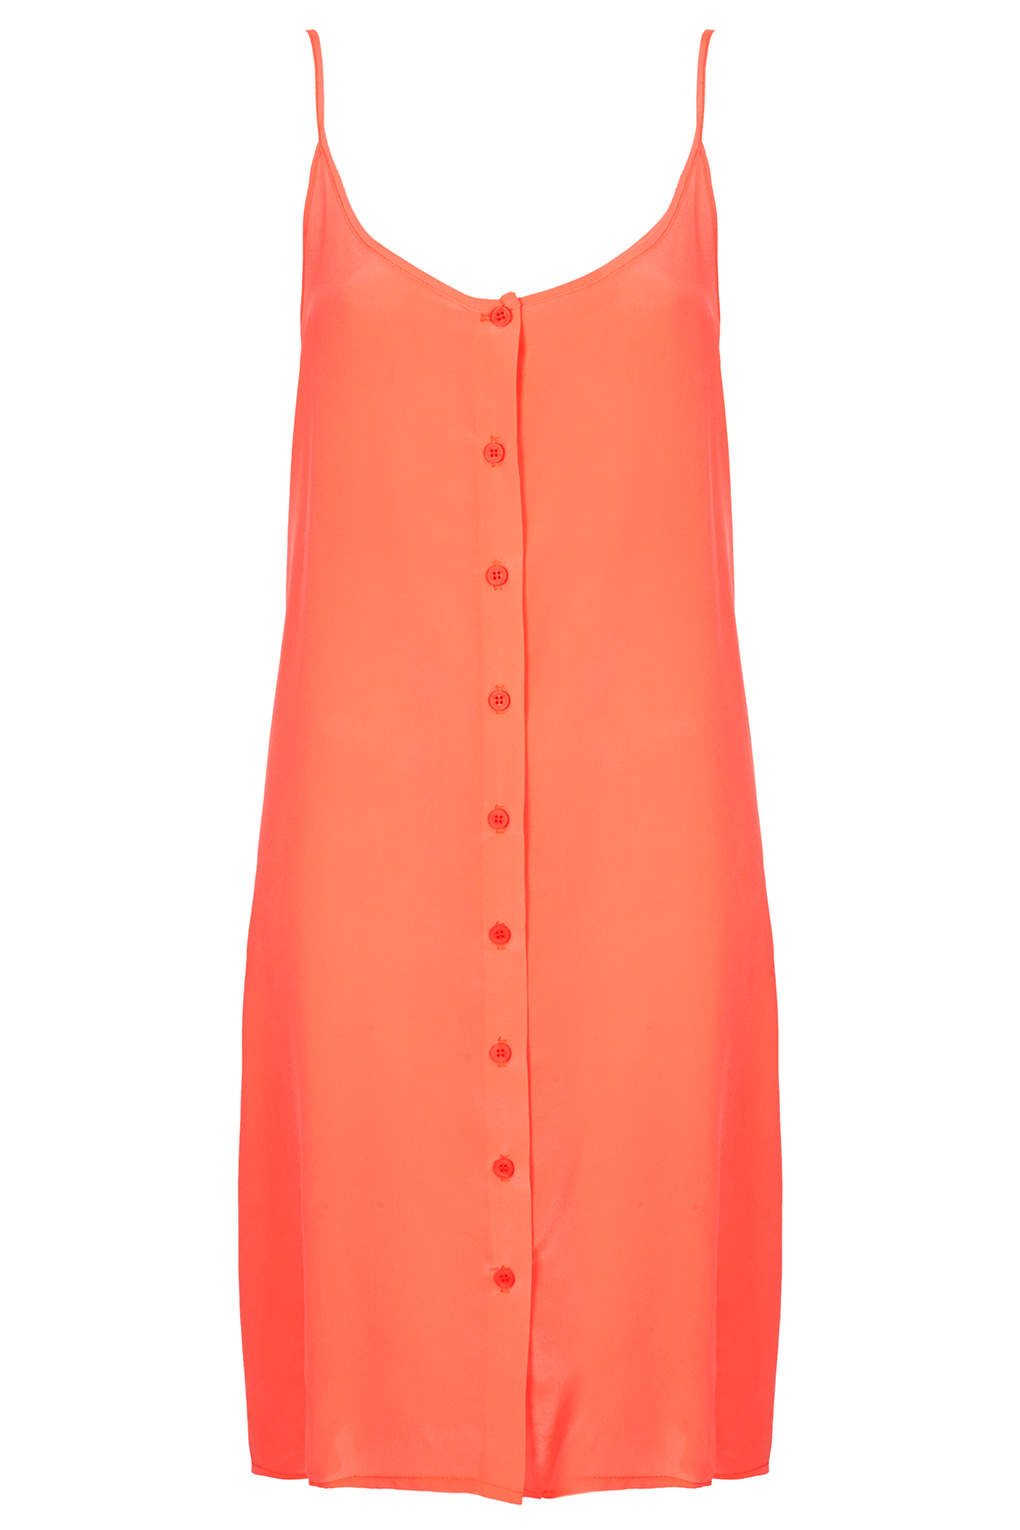 Pink Slip Dress Boutique  Cocktail Dresses 2016